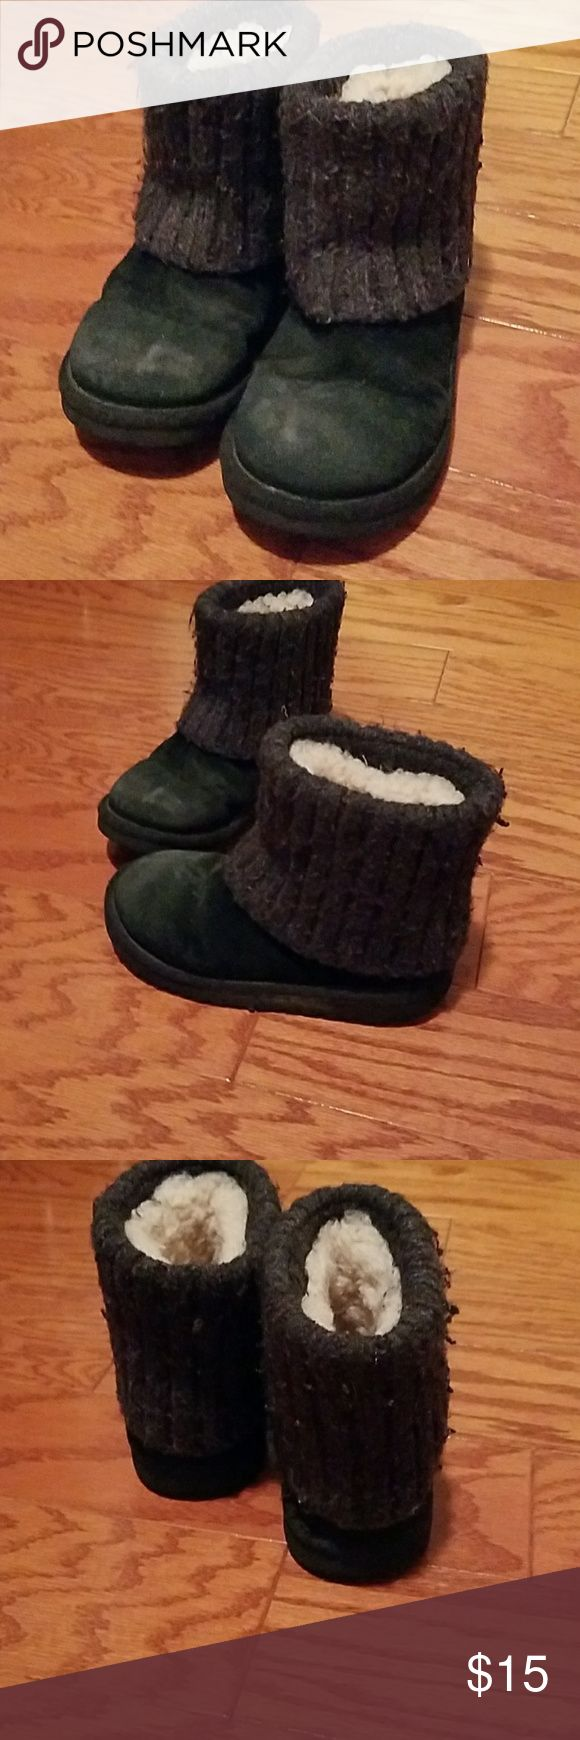 Ugg black short boots for girls Black suede with a sweater trim UGG Shoes Rain & Snow Boots